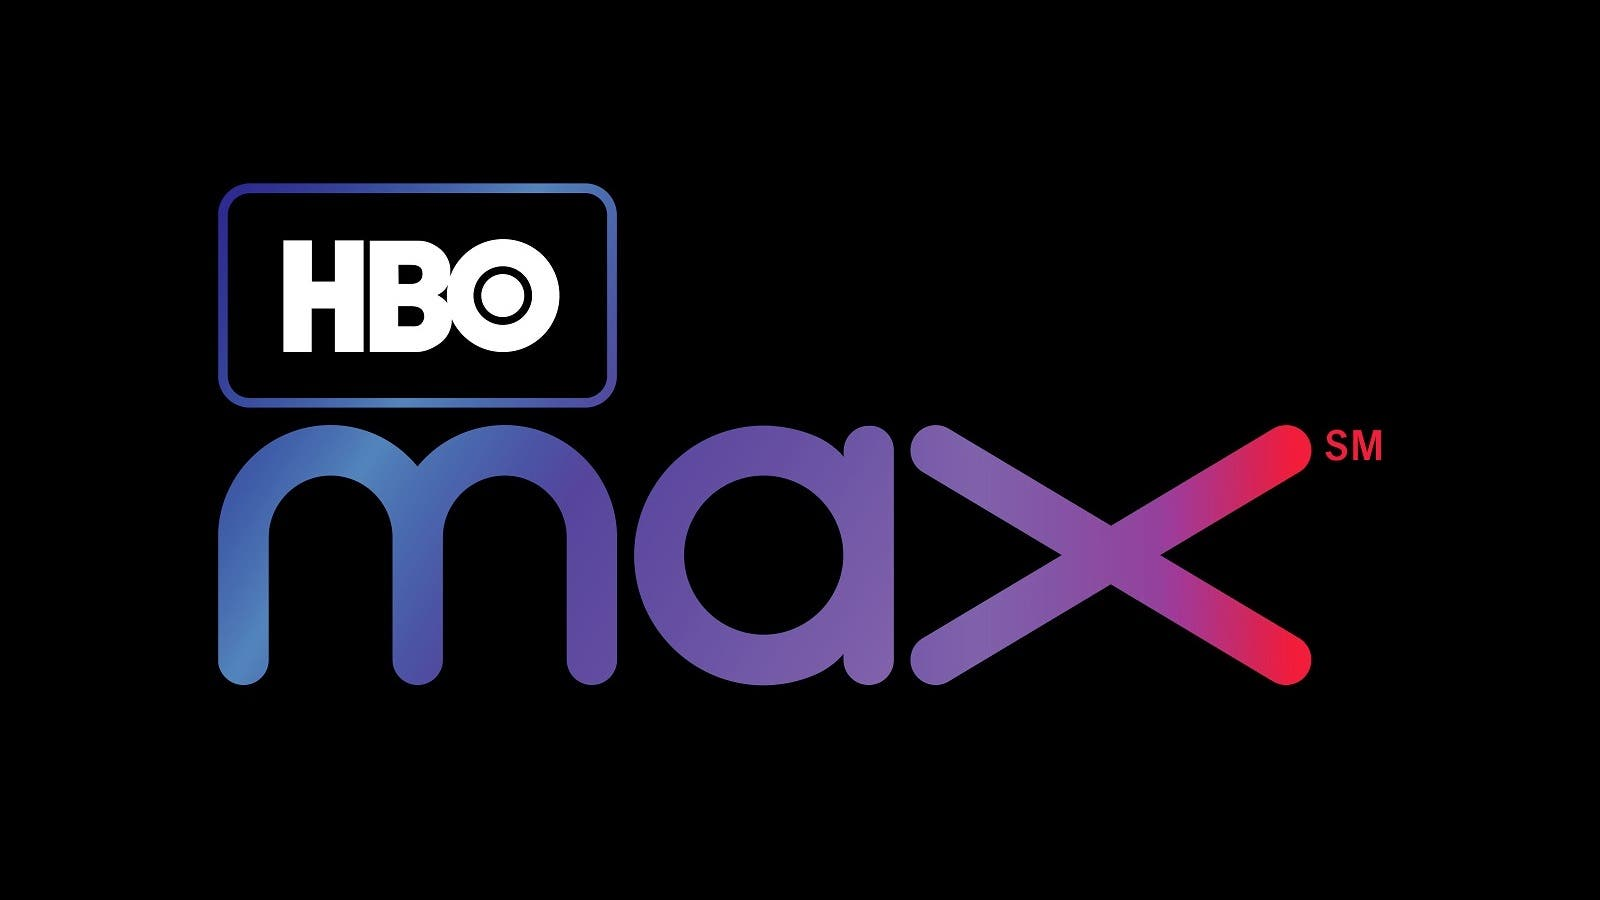 HBO Max does not yet have them all with it as an independent platform, but it still has some interesting recommendations in its October catalog. We know it: HBO Max still holds great promise , particularly as everything concerning the Snyder Cut recording draws all the attention around the platform's programming. But while Zack Snyder finishes what seems - and we hope - is his masterpiece, the channel shows some novelties in its repertoire that make it clear that its intention is to transform its catalog into a large collection of the best of cinema and above all, with the best offer for nostalgic people on the market . 5 movies and a series for October on HBO Max: Austin Powers: International Man Of Mystery, de Jay Roach (1997) Comedian Mike Myers was the creator of a kind of grotesque, endearing and delusional character - yes, all at once - that marked a before and after in American comedy. Especially for its use of pop references and creating a whole new journey through the classic Slapstick. In his purple suit, seductive mojo, and terrible teeth, Austin Powers demonstrated the power of a kind of cultural and social mockery that is still novel, despite distance and modern sensibilities. You can see it in the HBO Max catalog starting October 1. Austin Powers: The Spy Who Shagged Me, de Jay Roach (1999) Like any self-respecting box office success, Austin Powers returned to the cinema after a short and failed marriage to his beloved Vanessa (actress Elizabeth Hurley), to resume his work as the most disconcerting and mocking secret agent in cinema. As a sequel, the script elevates the multi-role roles played by actor Mike Myers to a new dimension and plays on all the clichés of the movie's spy agents. A guilty pleasure for moviegoers with a keen eye for references. Also premieres on October 1. The Chronicles Of Riddick, (Director's Cut) de David Twohy (2004) The film that became a surprise success for Vin Diesel, had a review by its director that included several scenes of ultraviolence and high sexual content, which were eliminated from the first commercial cut that reached the cinema screens to obtain the rated PG - 13. Now, the film arrives just as Twohy envisioned it on October 1st on HBO Max. Boogie Nights, de Paul Thomas Anderson (1997) The story behind the world of American pornography comes in all its weird and harsh splendor, from the hand of one of the great contemporary directors. Its frenzied, extravagant and raw tone is not only an almost anthropological journey through the shadows of the culture of a country obsessed with success, but also elaborates a strange version about the cultural status of pornography. A delight for movie lovers and even those who wish to analyze American society from a completely different point of view. You can see it from October 1. Boomerang, de Reginald Hudlin (1992) There was a time when Eddie Murphy was the king of American comedy. But like all regents, he didn't seem entirely comfortable with the power underfoot, so he decided to start trying some new things. Boomerang was the actor's attempt to mix the comedy with something a bit more bitter and at some points, dramatic, without getting the mix to work. But in the end, it was an experiment that demonstrated Murphy's histrionic ability and also how much his career could give. A promise still on hold. You can see it from October 1. And a series Susanne Bier's The Undoing series explores the harsh moral and ethical implications of the story of therapist Grace Fraser (Nicole Kidman), who discovers that her husband could be responsible for a catastrophe. With its lavish cast and especially its crude perception of loyalty and power tainted by corruption, the film is one of the season's highlights for HBO Max. You can see it from October 25.